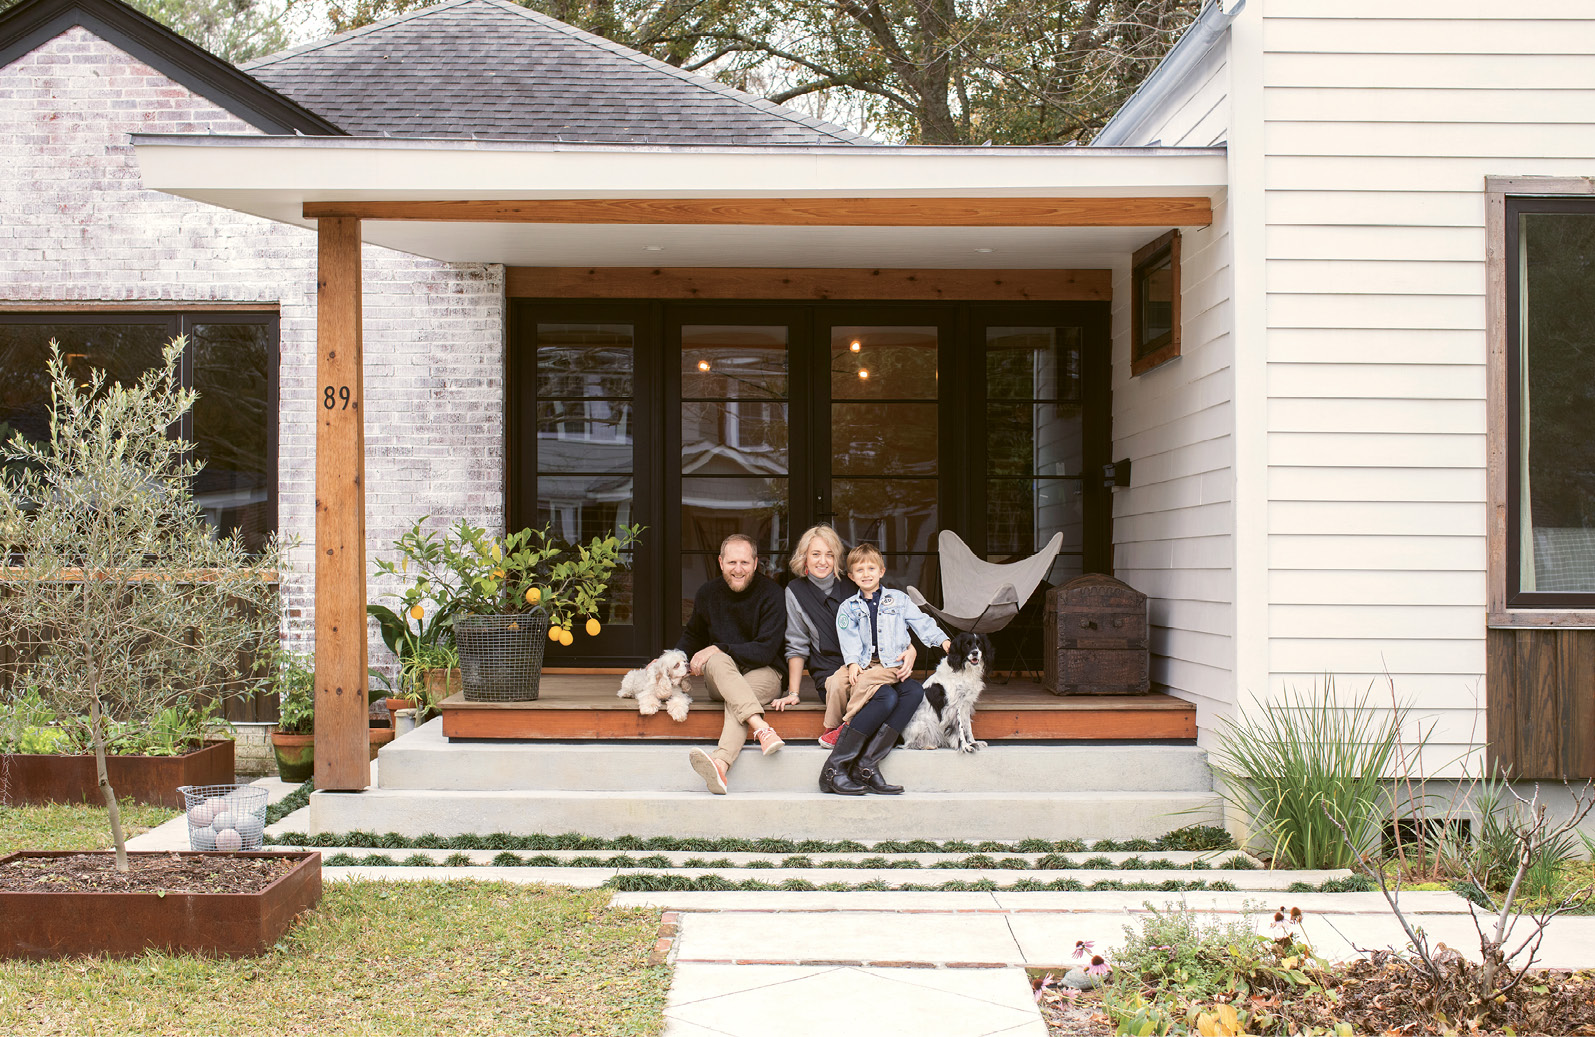 Jacques and Carrie Larson, pictured here with six-year-old son Jack and pups Lily Bean and Maggie Mayhem, hired Alicia Reed of Reggie Gibson Architects to help them transform their West Ashley cottage into a modern home perfect for the way their family lives and eats. Much of the landscape is devoted to edible plants, including an olive tree